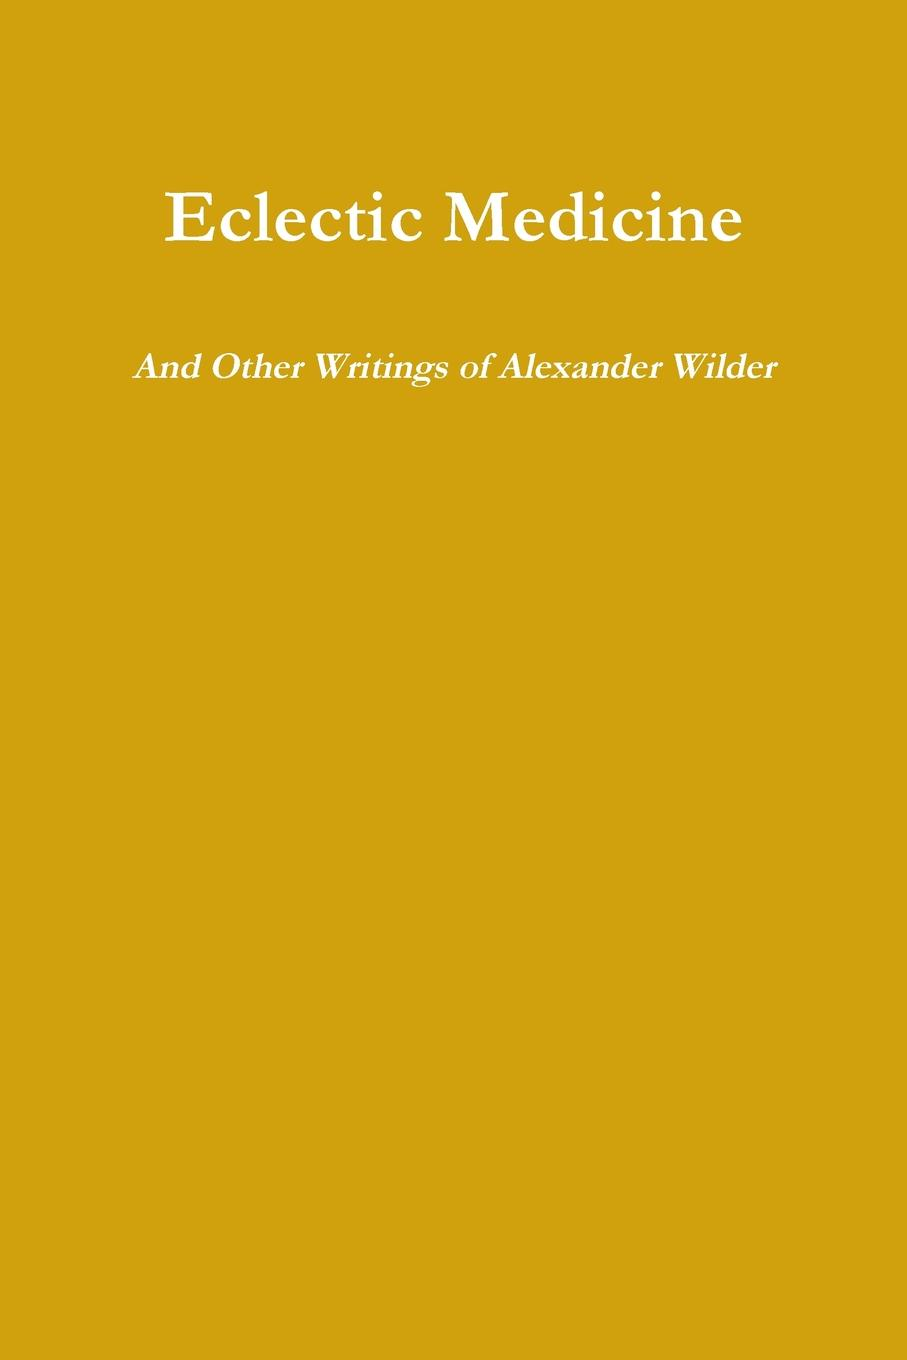 Alexander Wilder Eclectic Medicine And Other Writings of Alexander Wilder biographical writings s